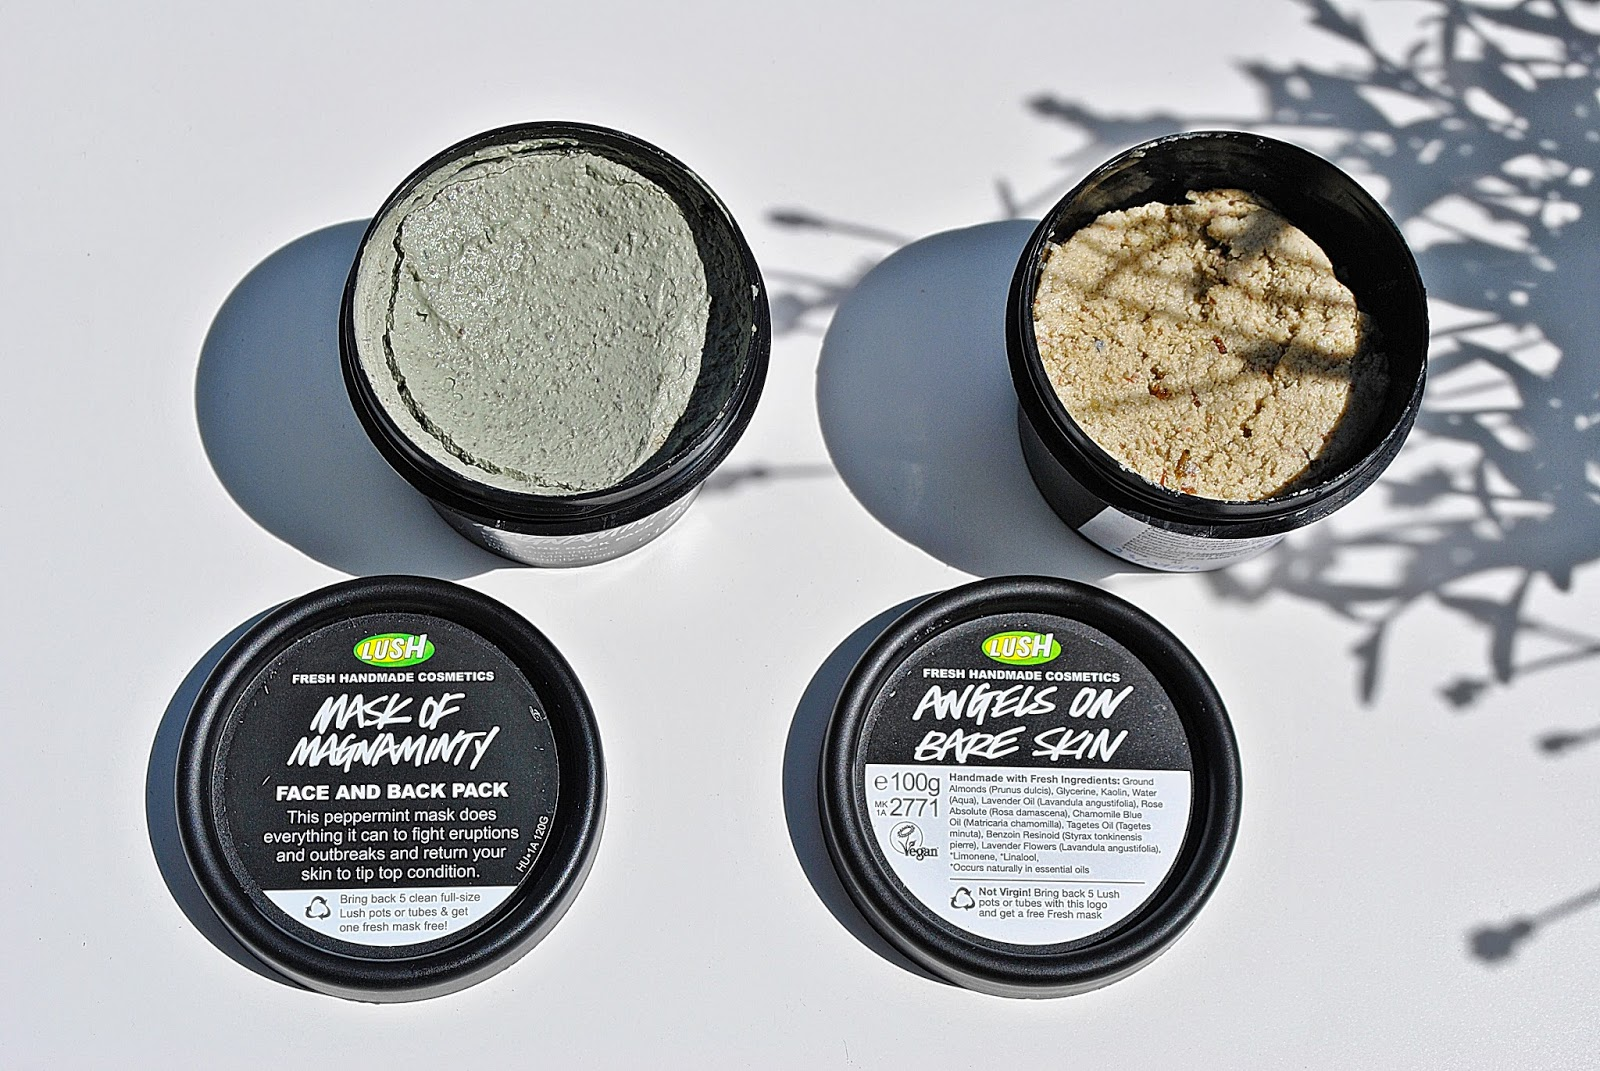 Lush, Angels On Bare Skin & Lush, Mask Of Magnaminty